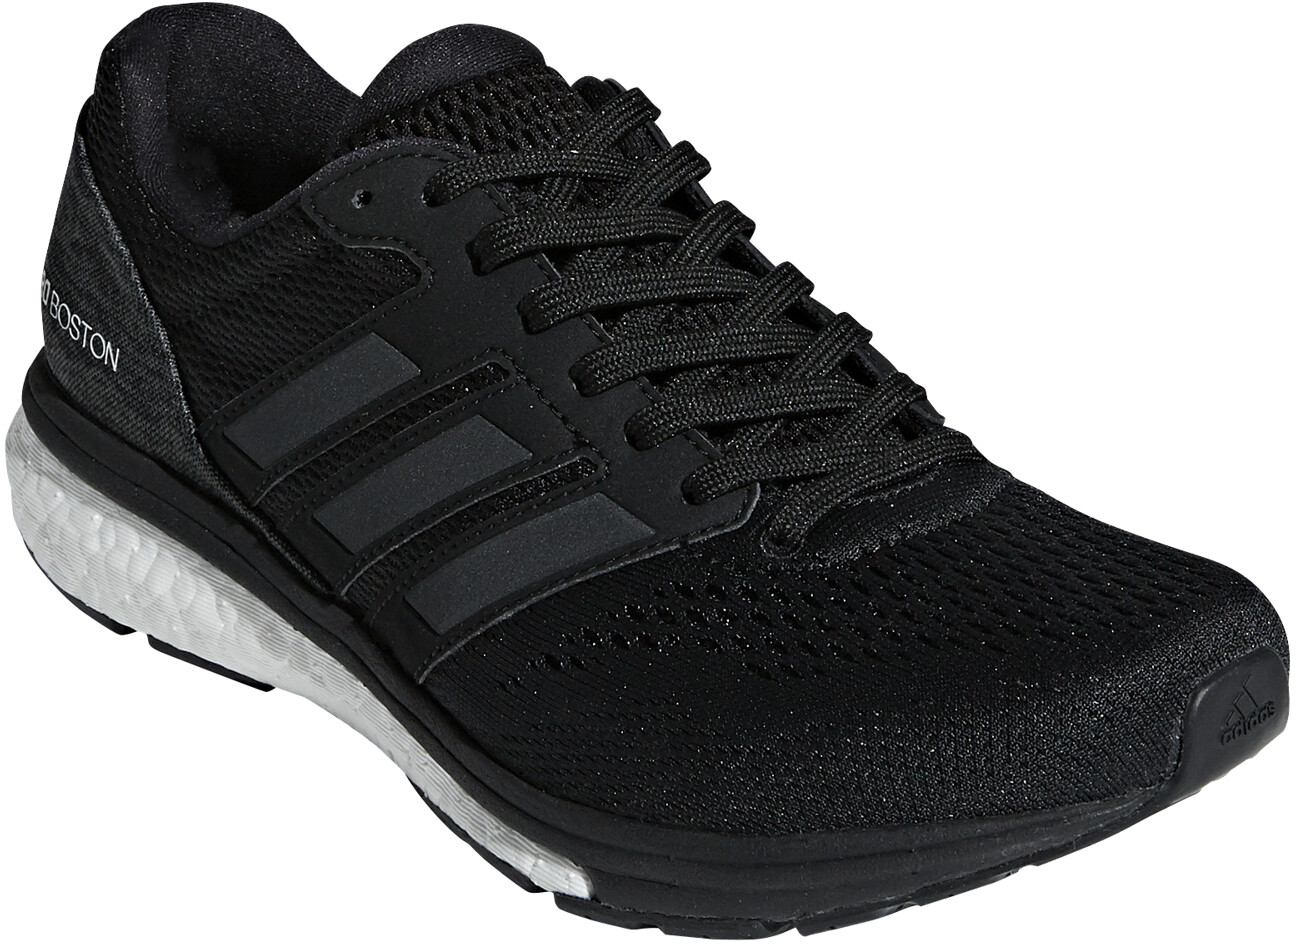 a24dc22977576c adidas Adizero Boston 7 Running Shoes black at Bikester.co.uk